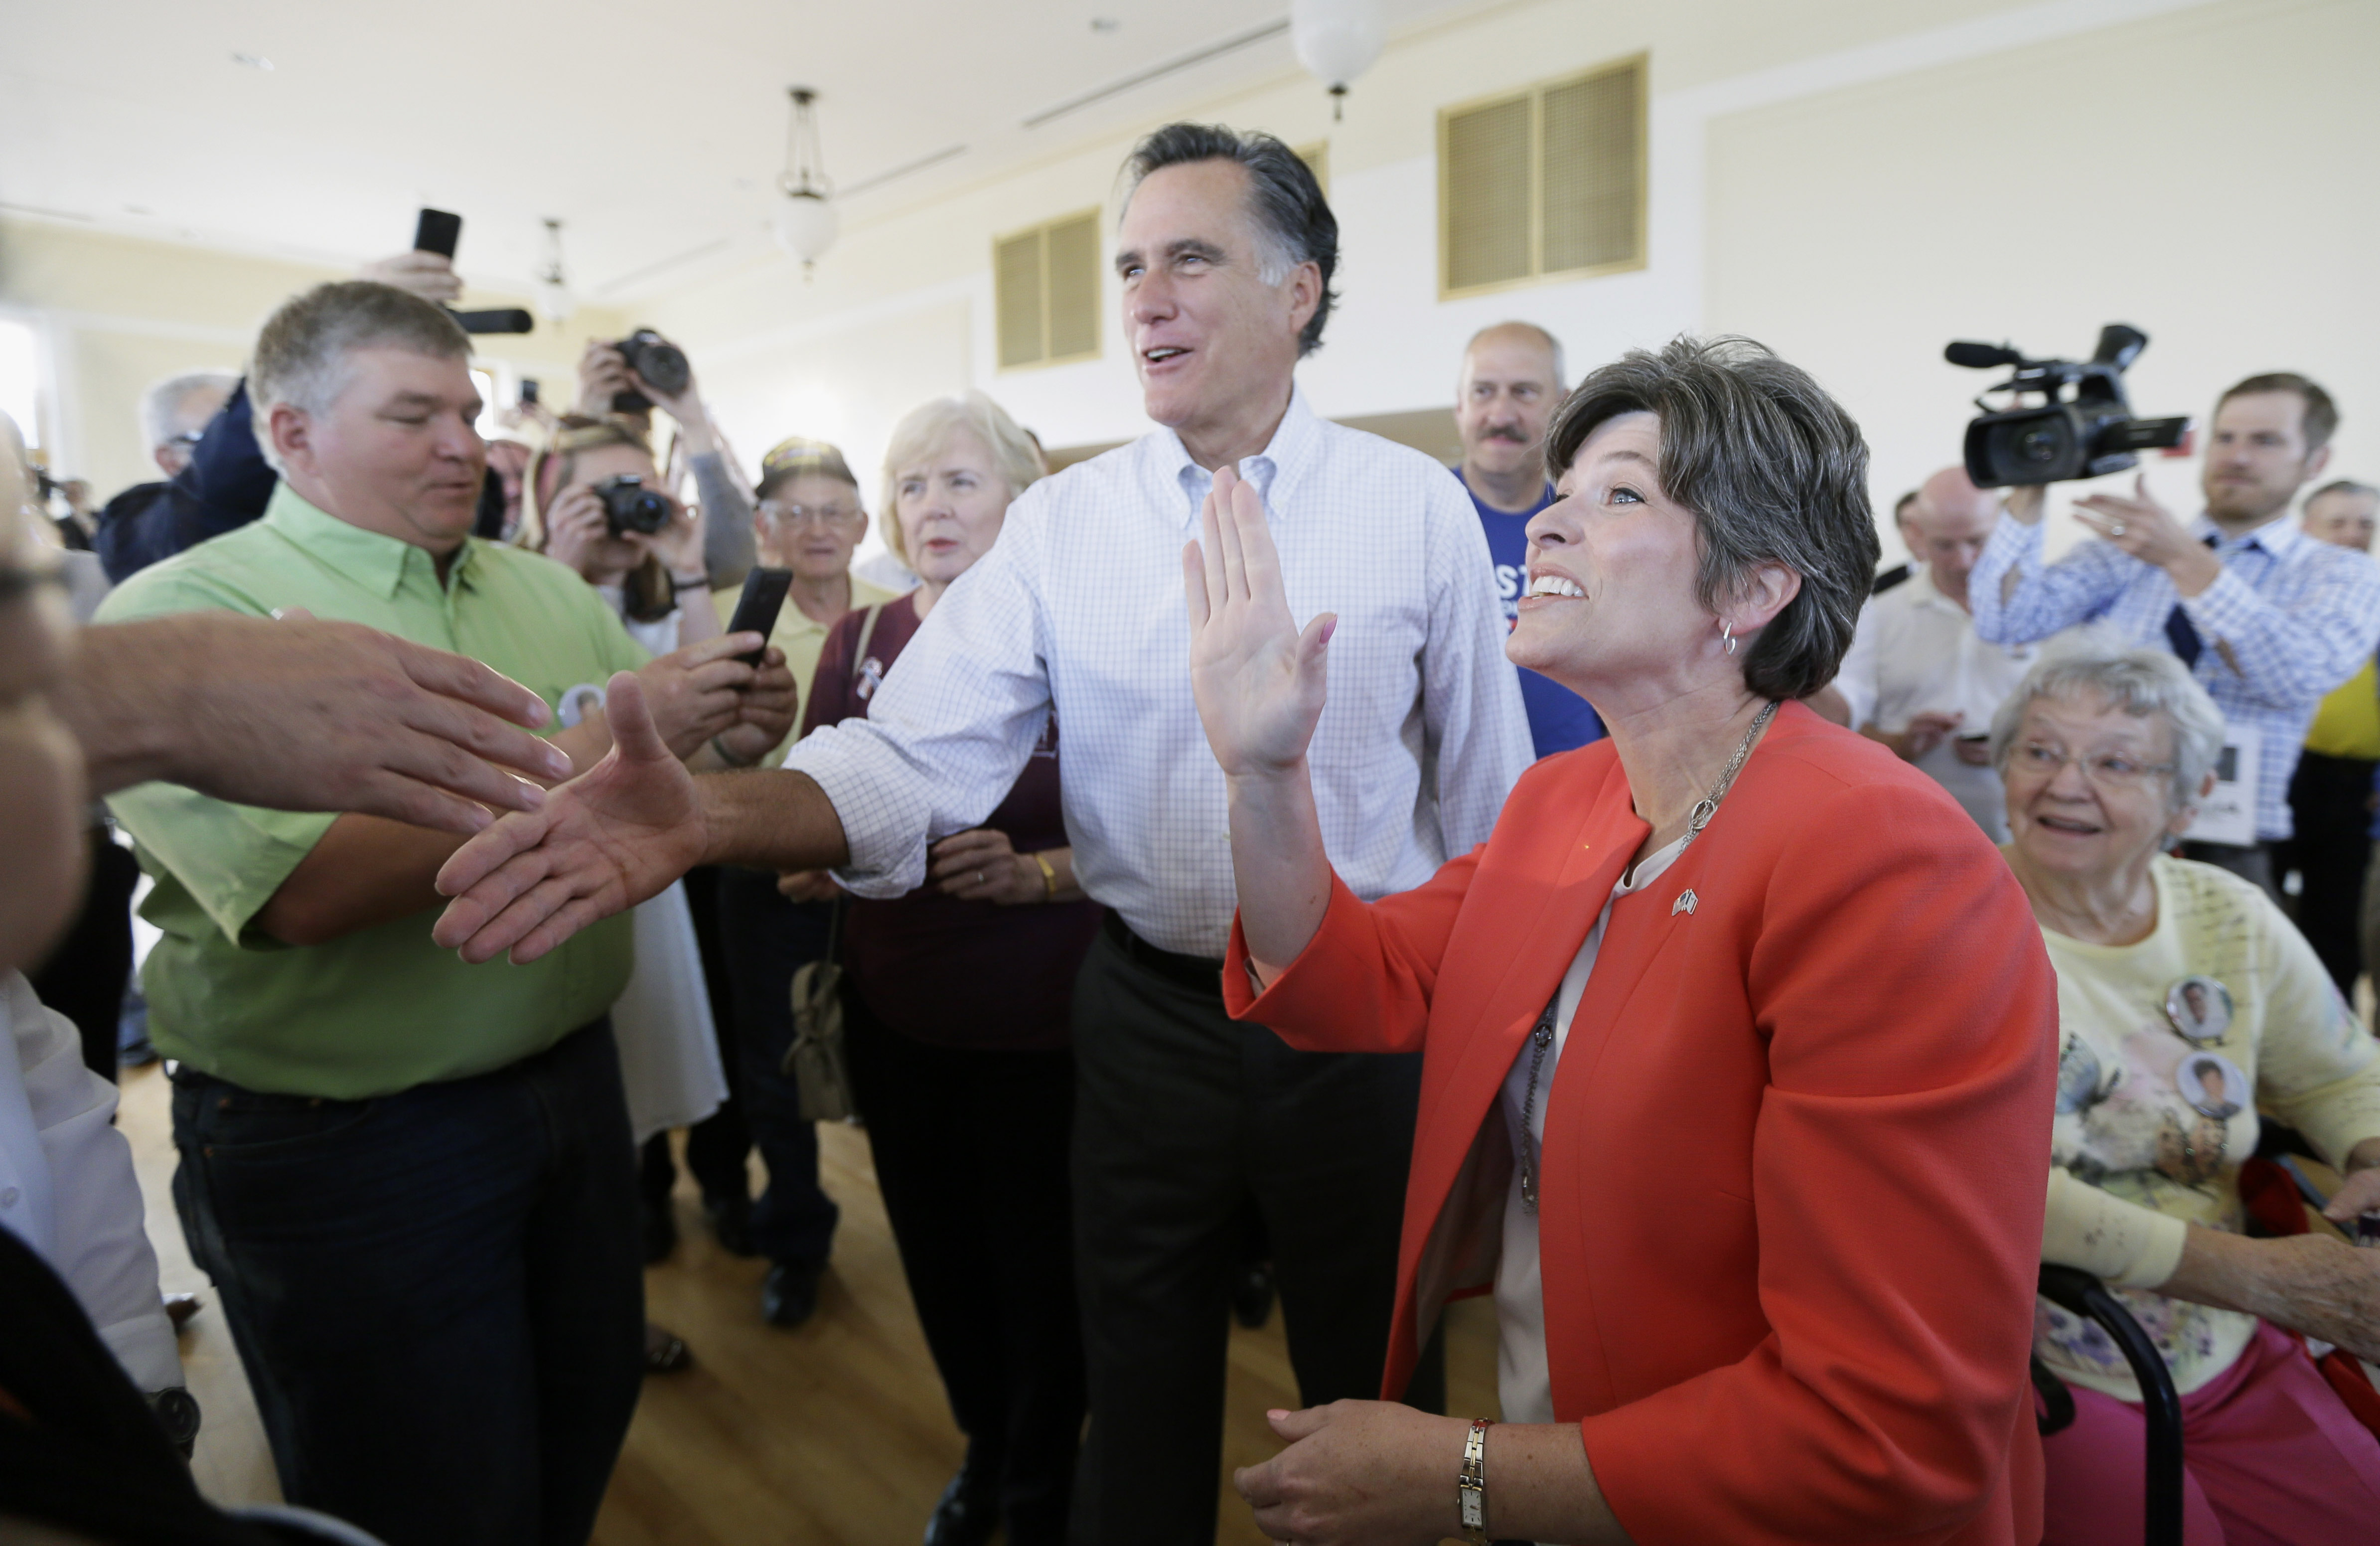 Former Republican presidential nominee Mitt Romney, center, greets supporters during a rally for Iowa Republican Senate candidate Joni Ernst, right, Friday, May 30, 2014, in Cedar Rapids, Iowa.